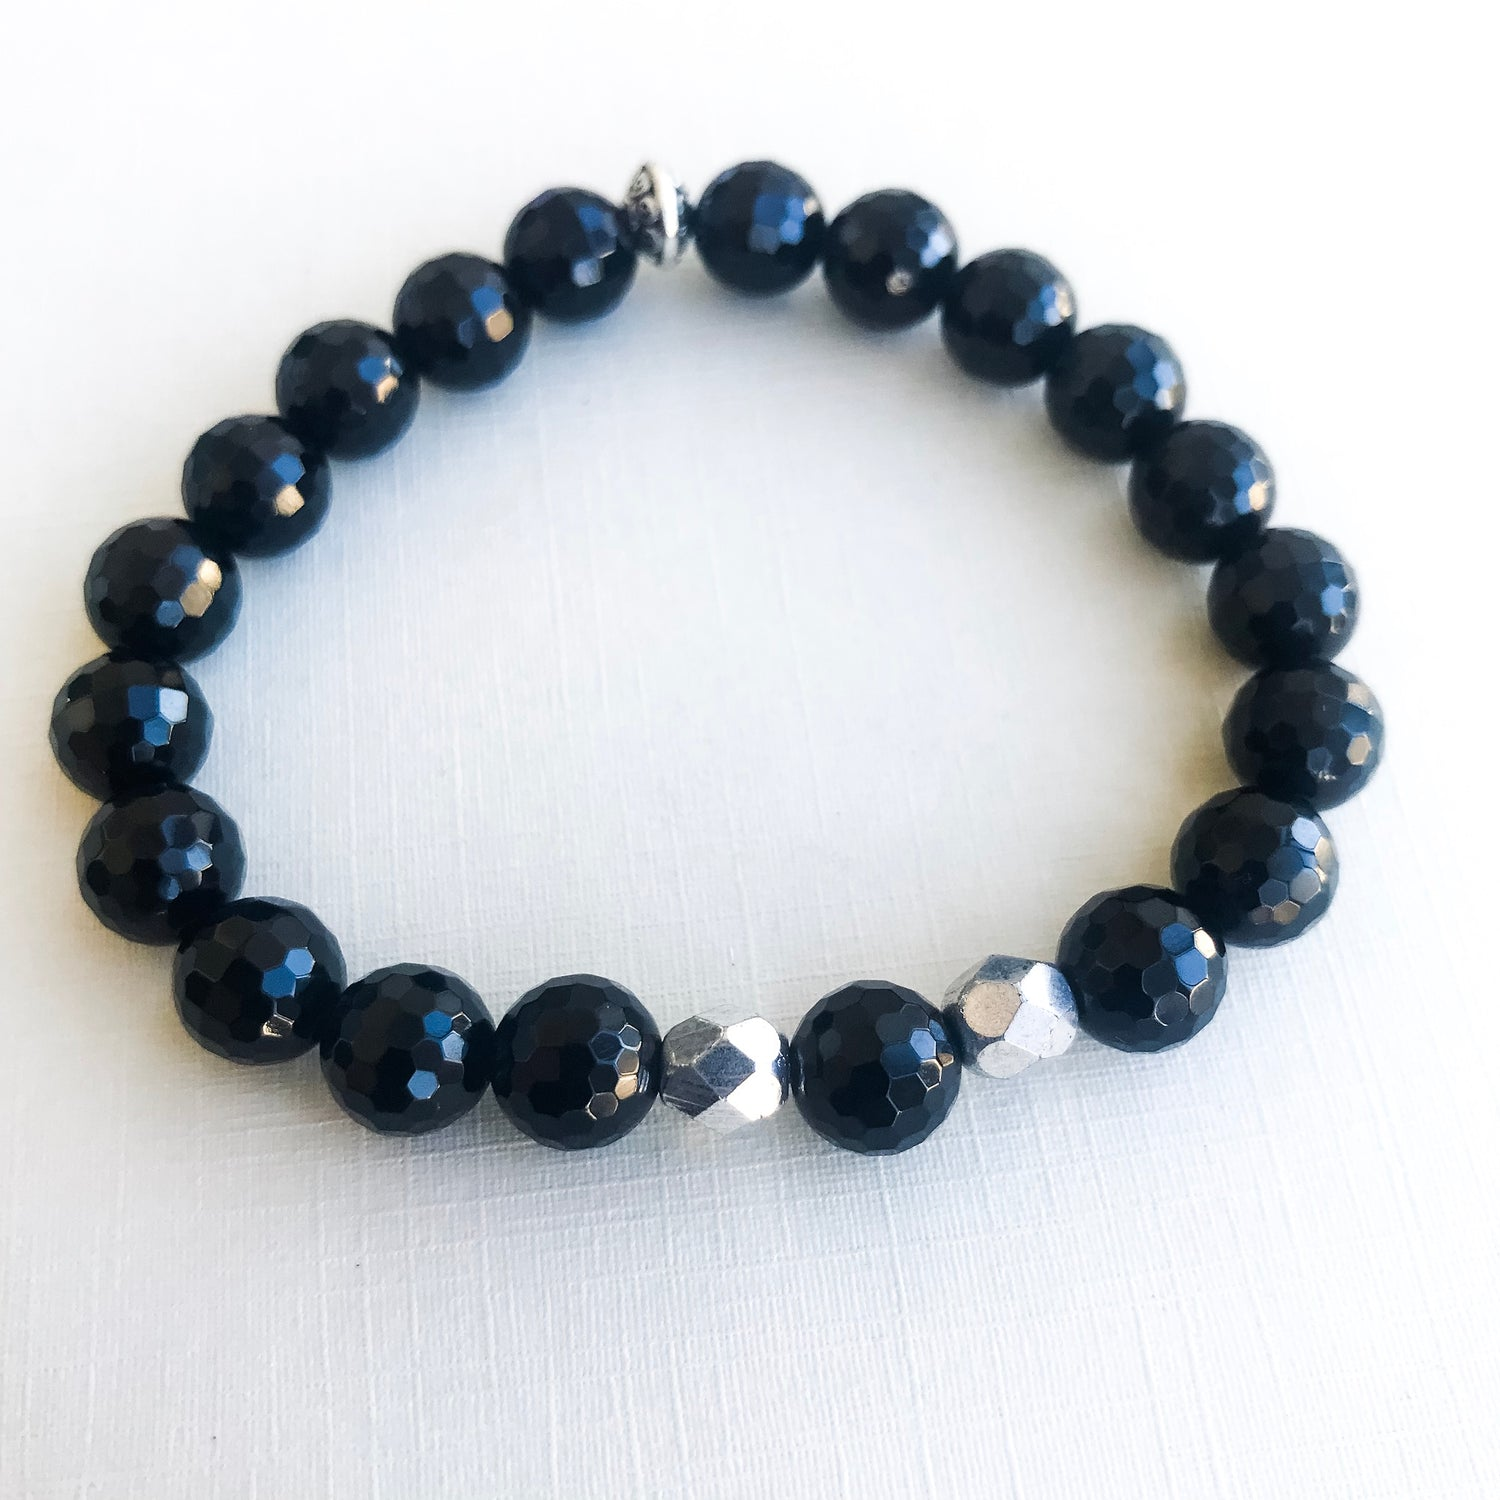 Declare. Believe. Achieve - Black Onyx Faceted